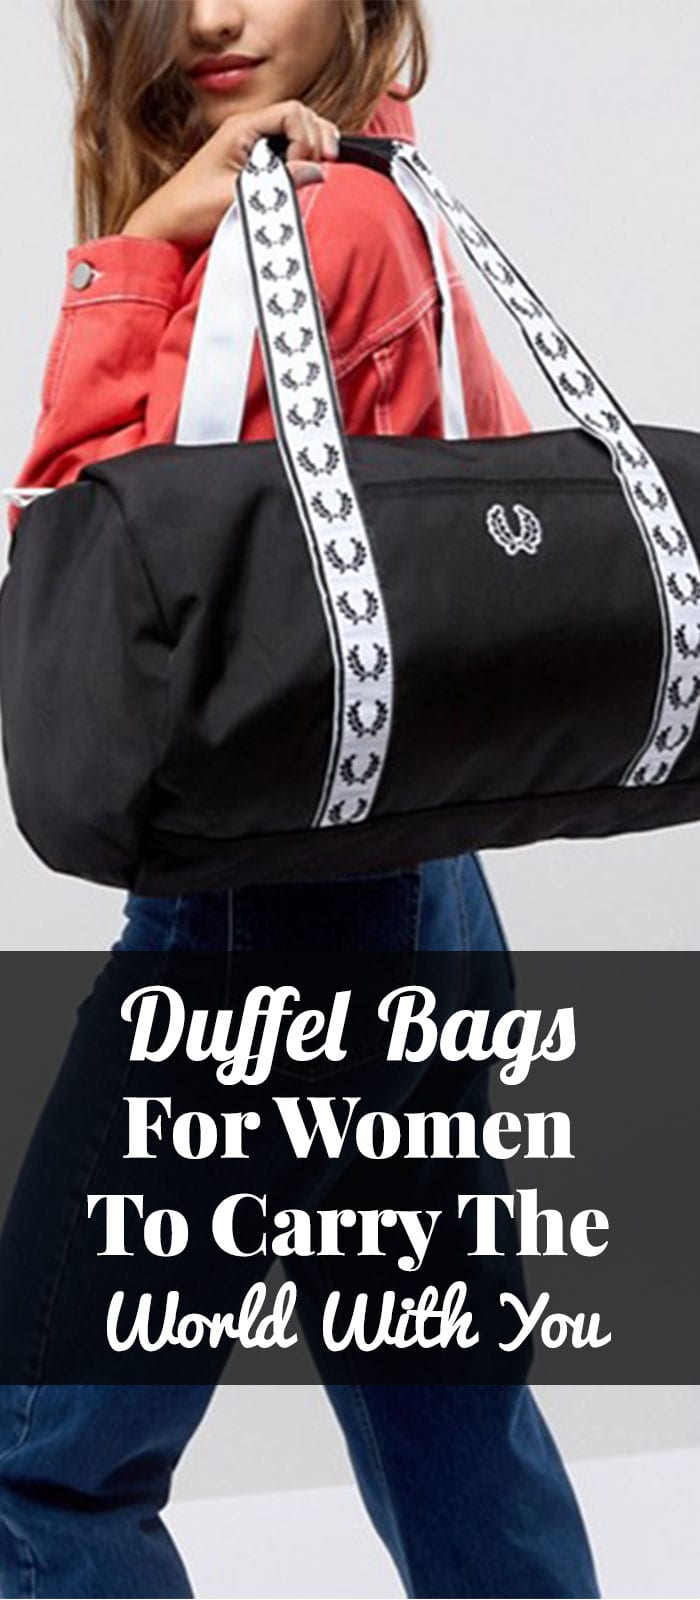 Duffel Bags For Women - To Carry The World With You